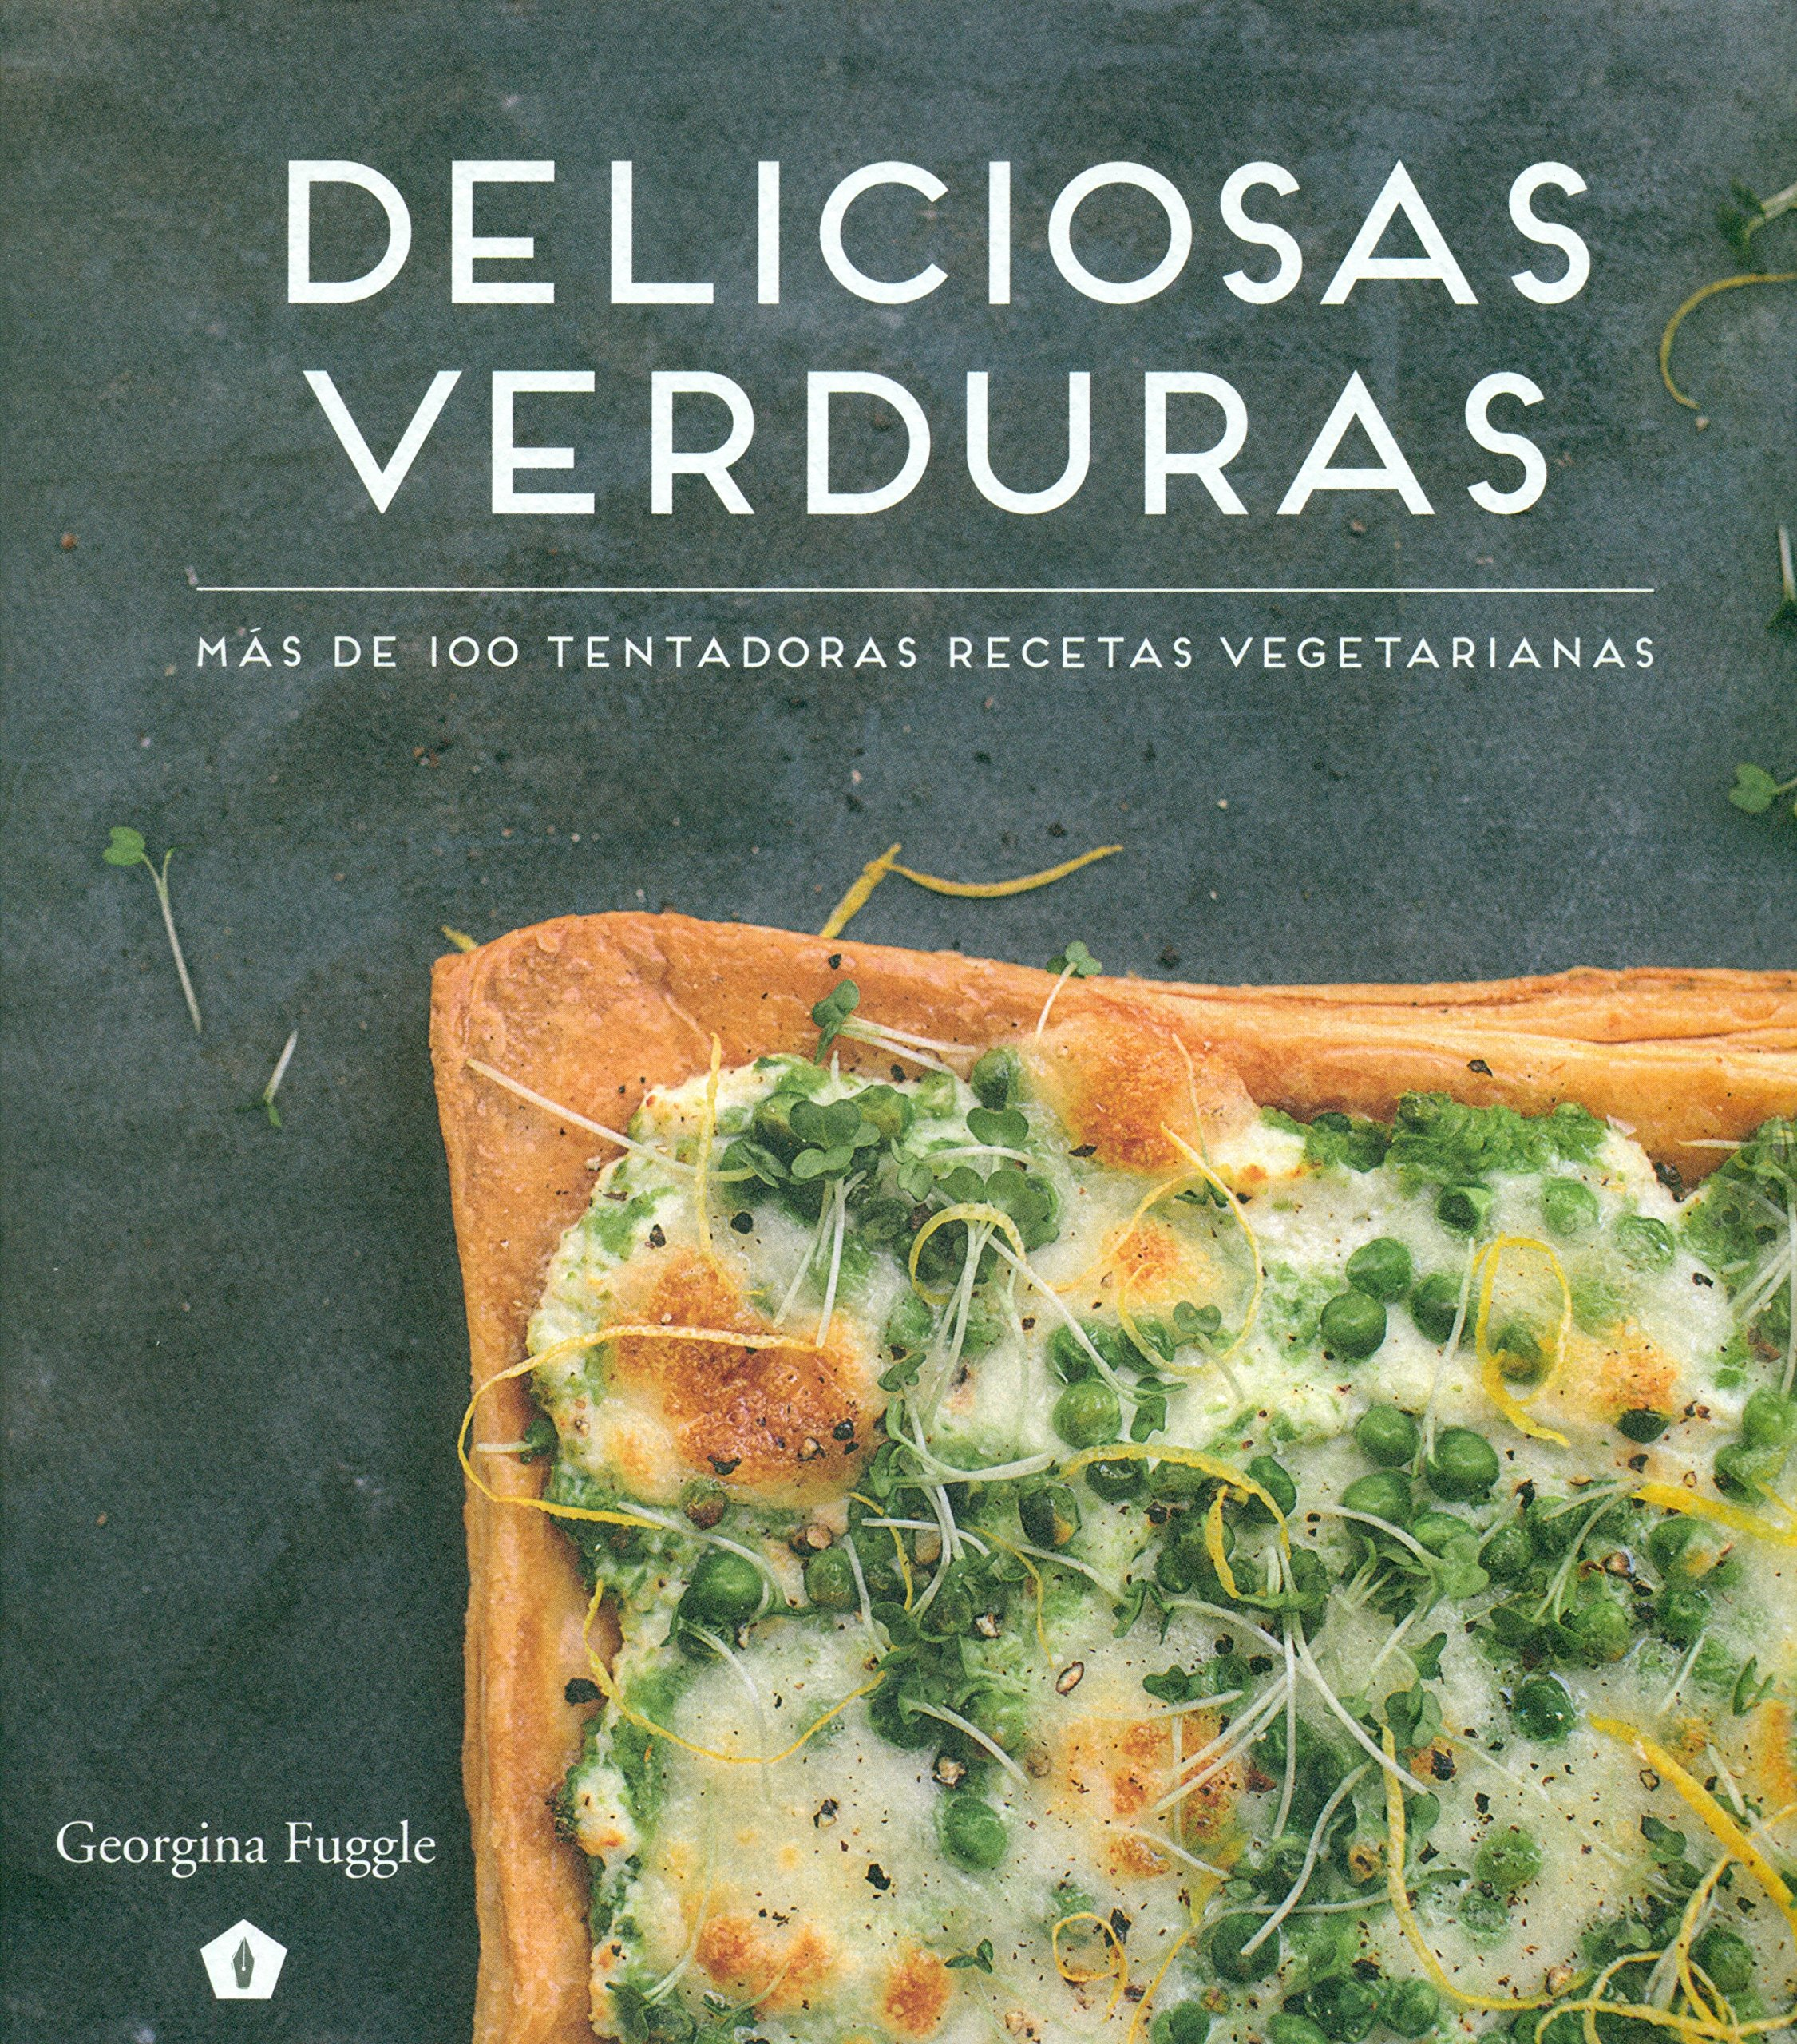 Deliciosas verduras (Spanish Edition): Georgina Fuggle: 9788416407088: Amazon.com: Books